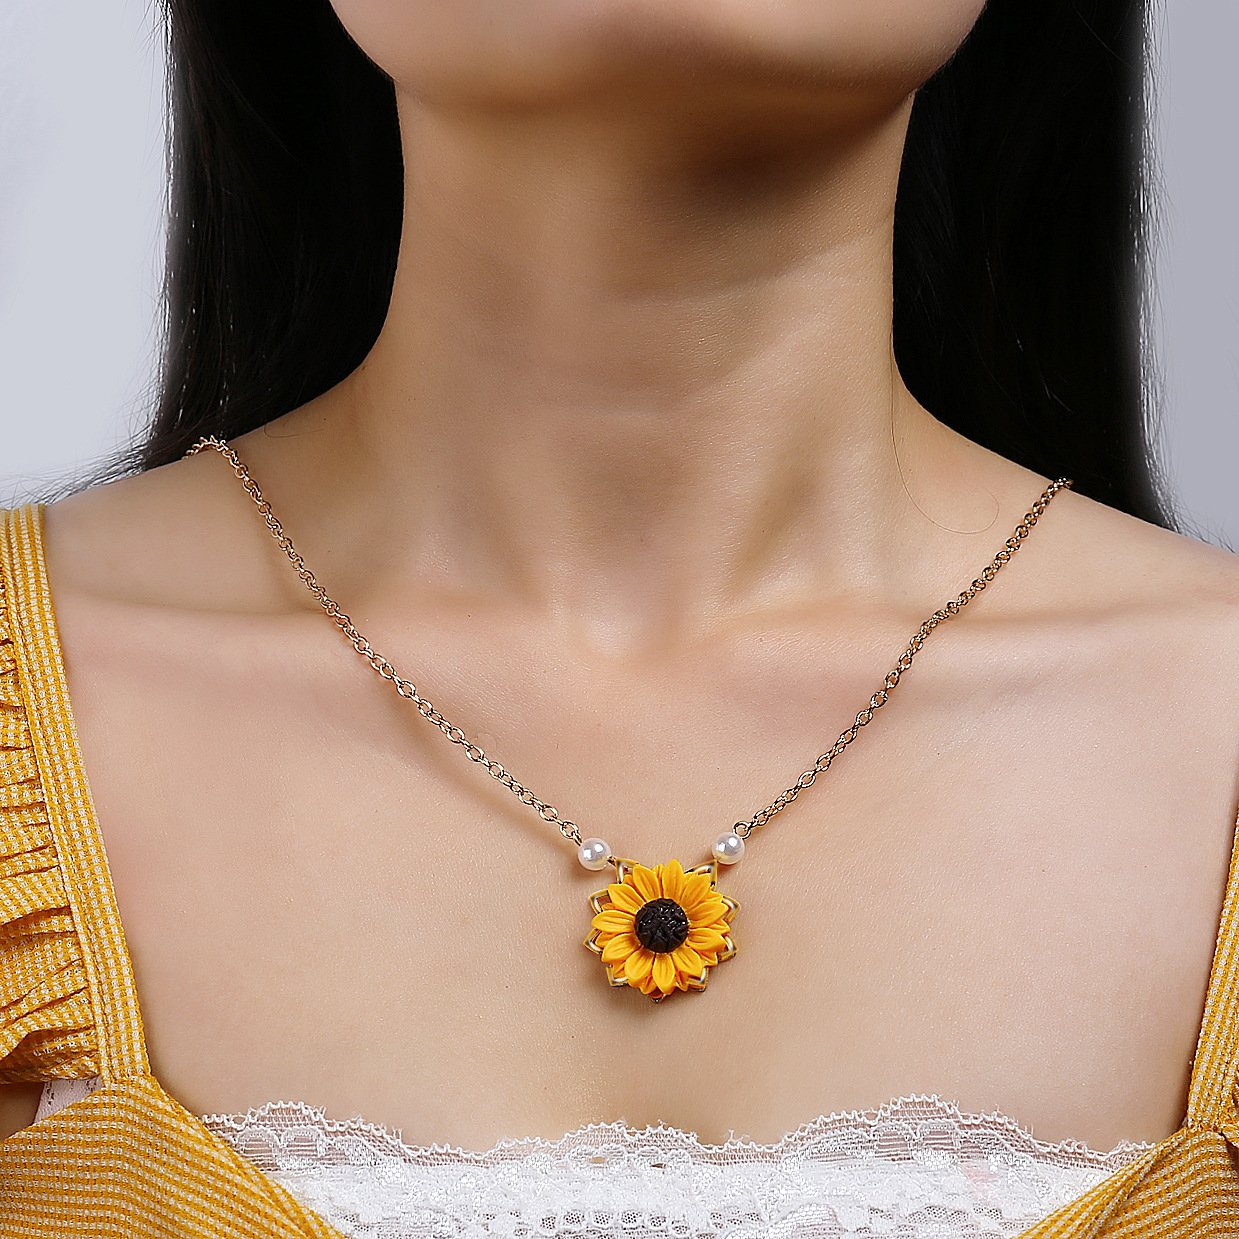 Full Bloom Sunflower Necklace